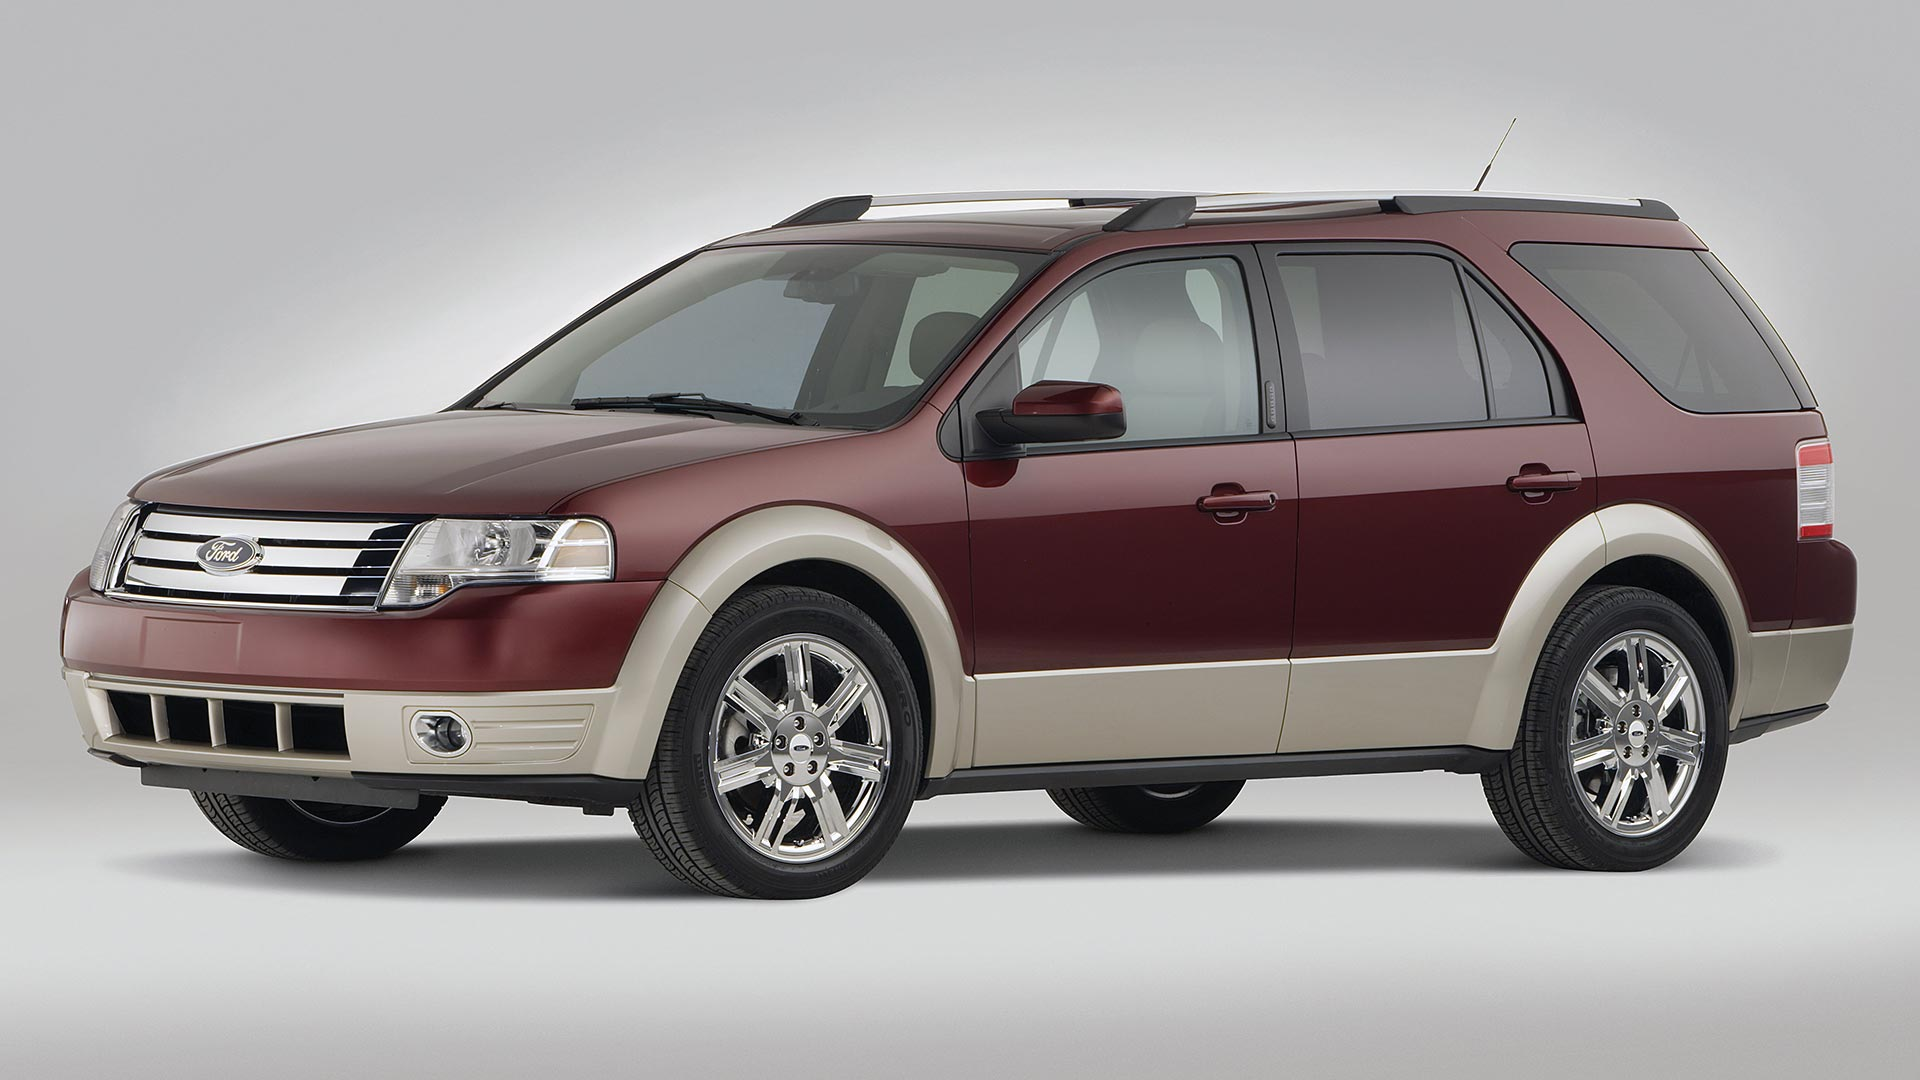 2008 Ford Taurus X 4-door SUV